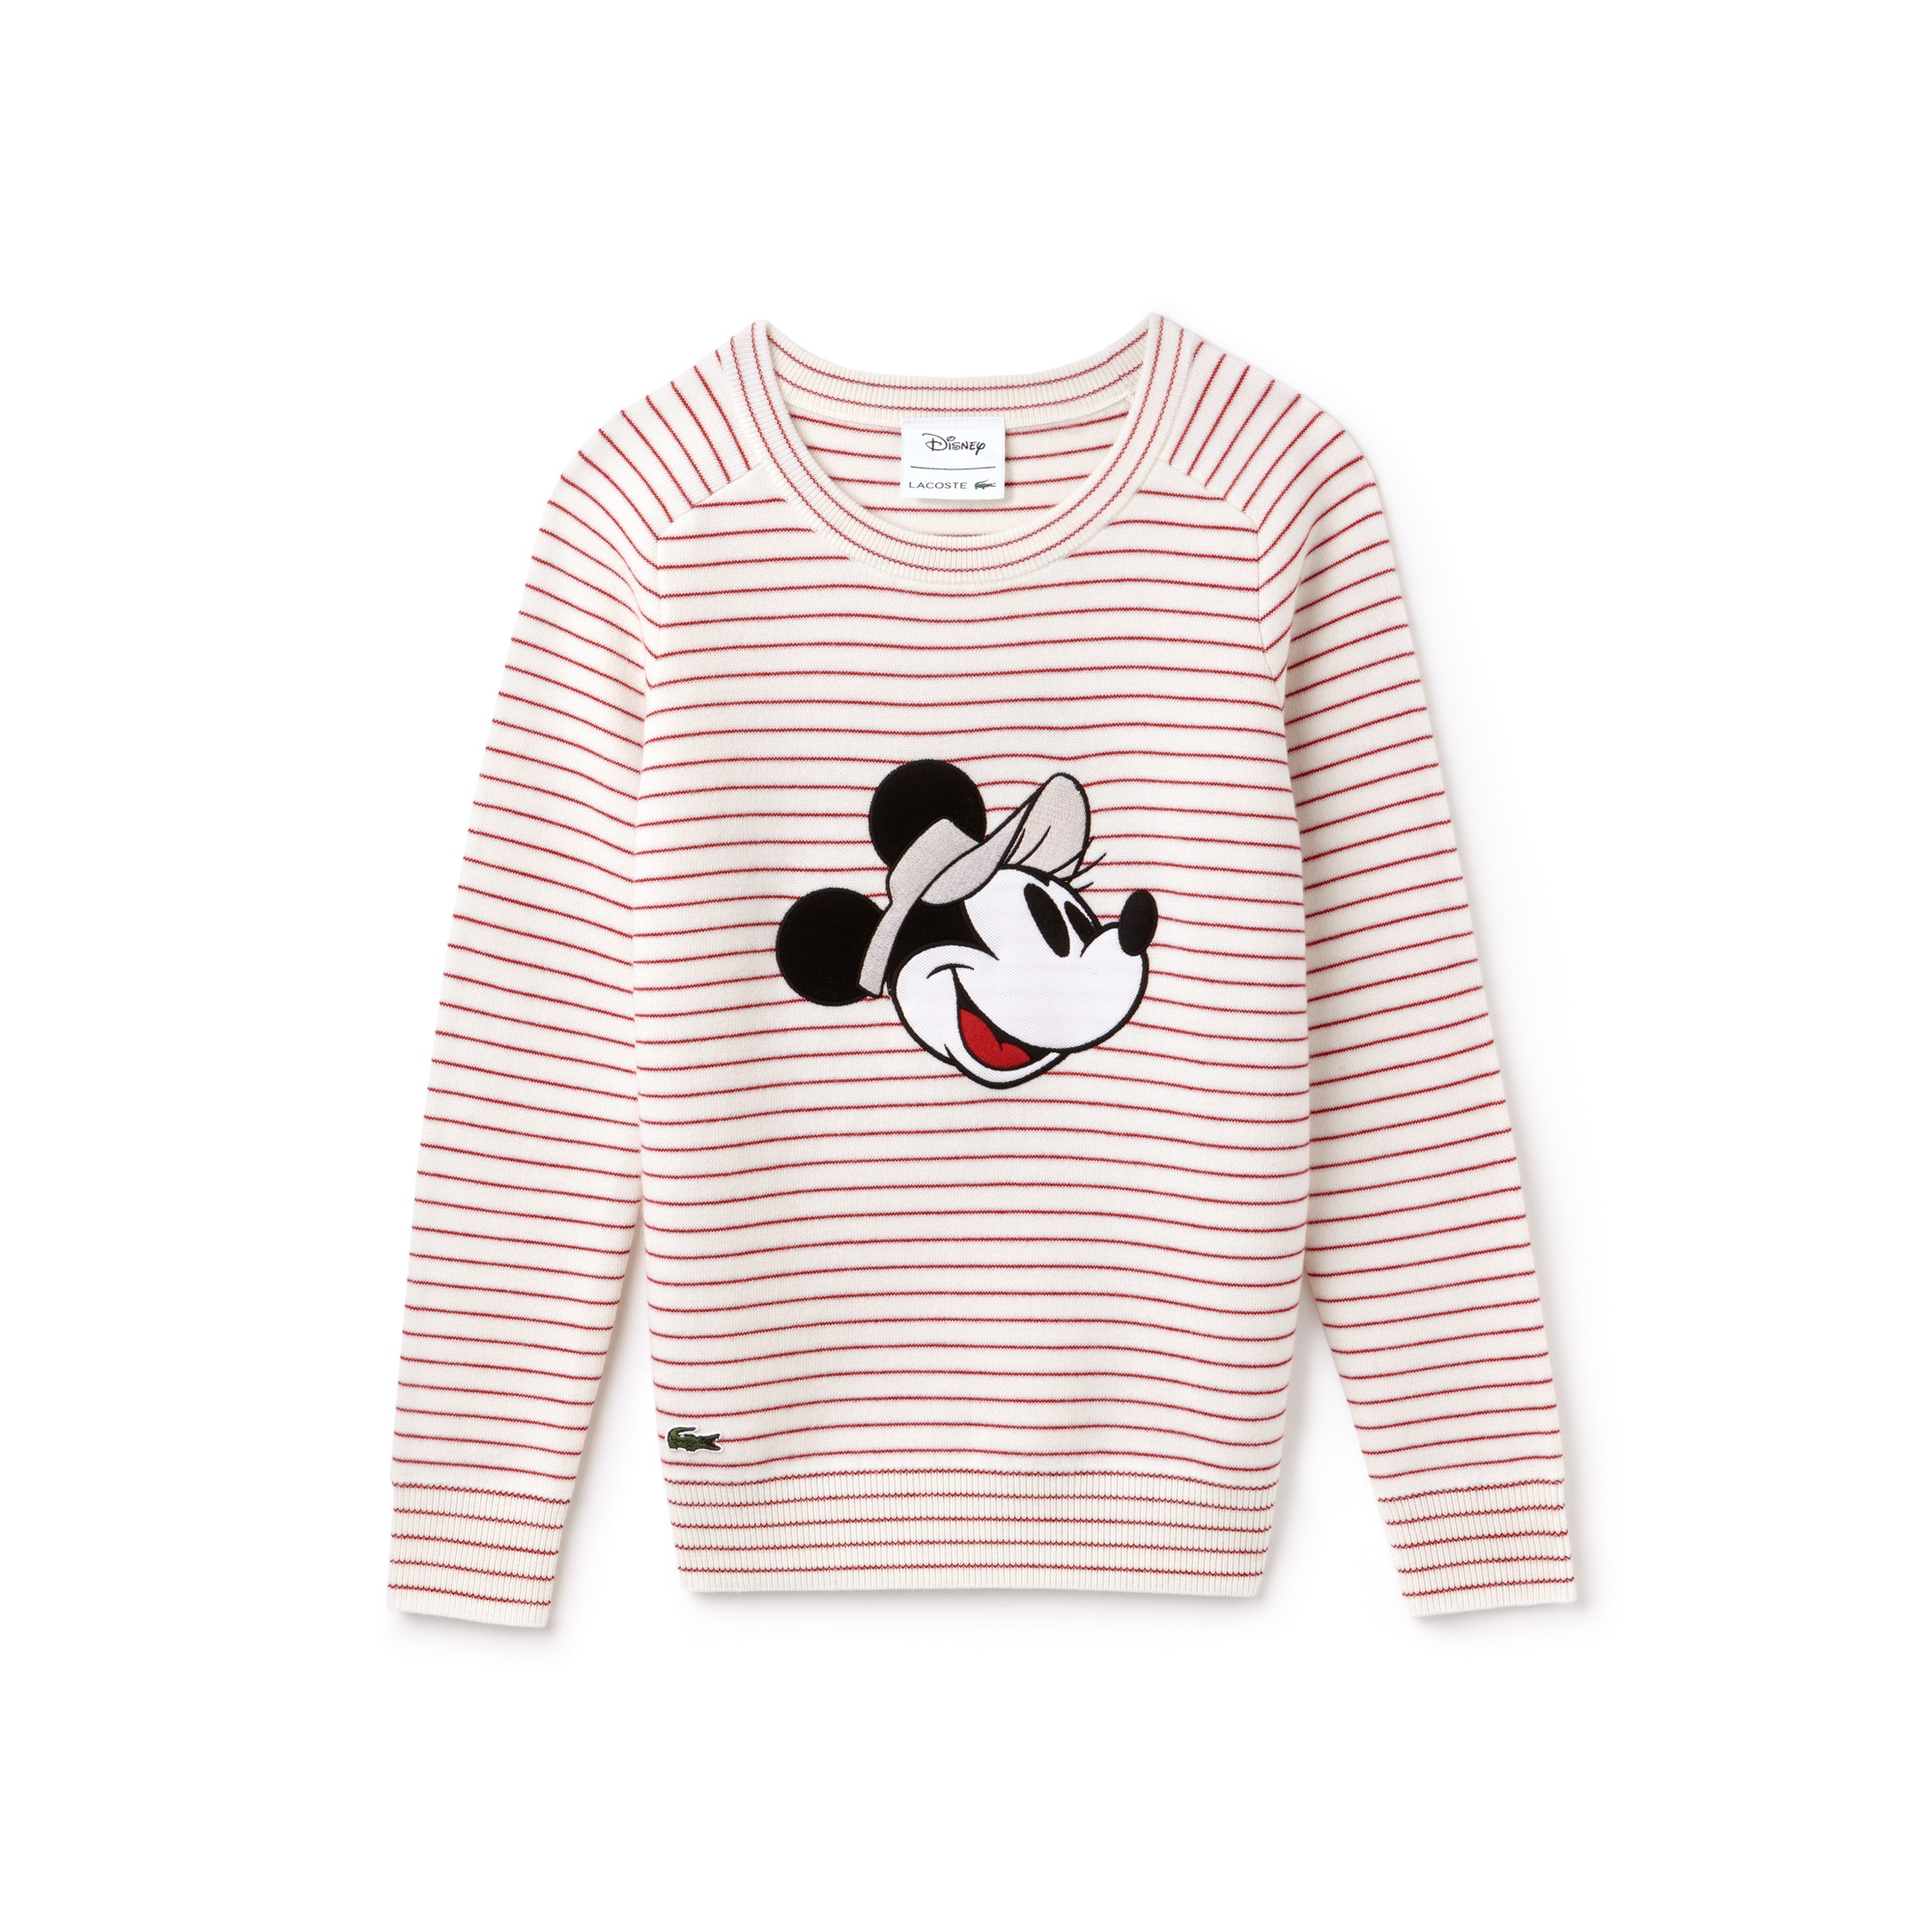 Pull col rond  avec broderie Minnie Collab Disney